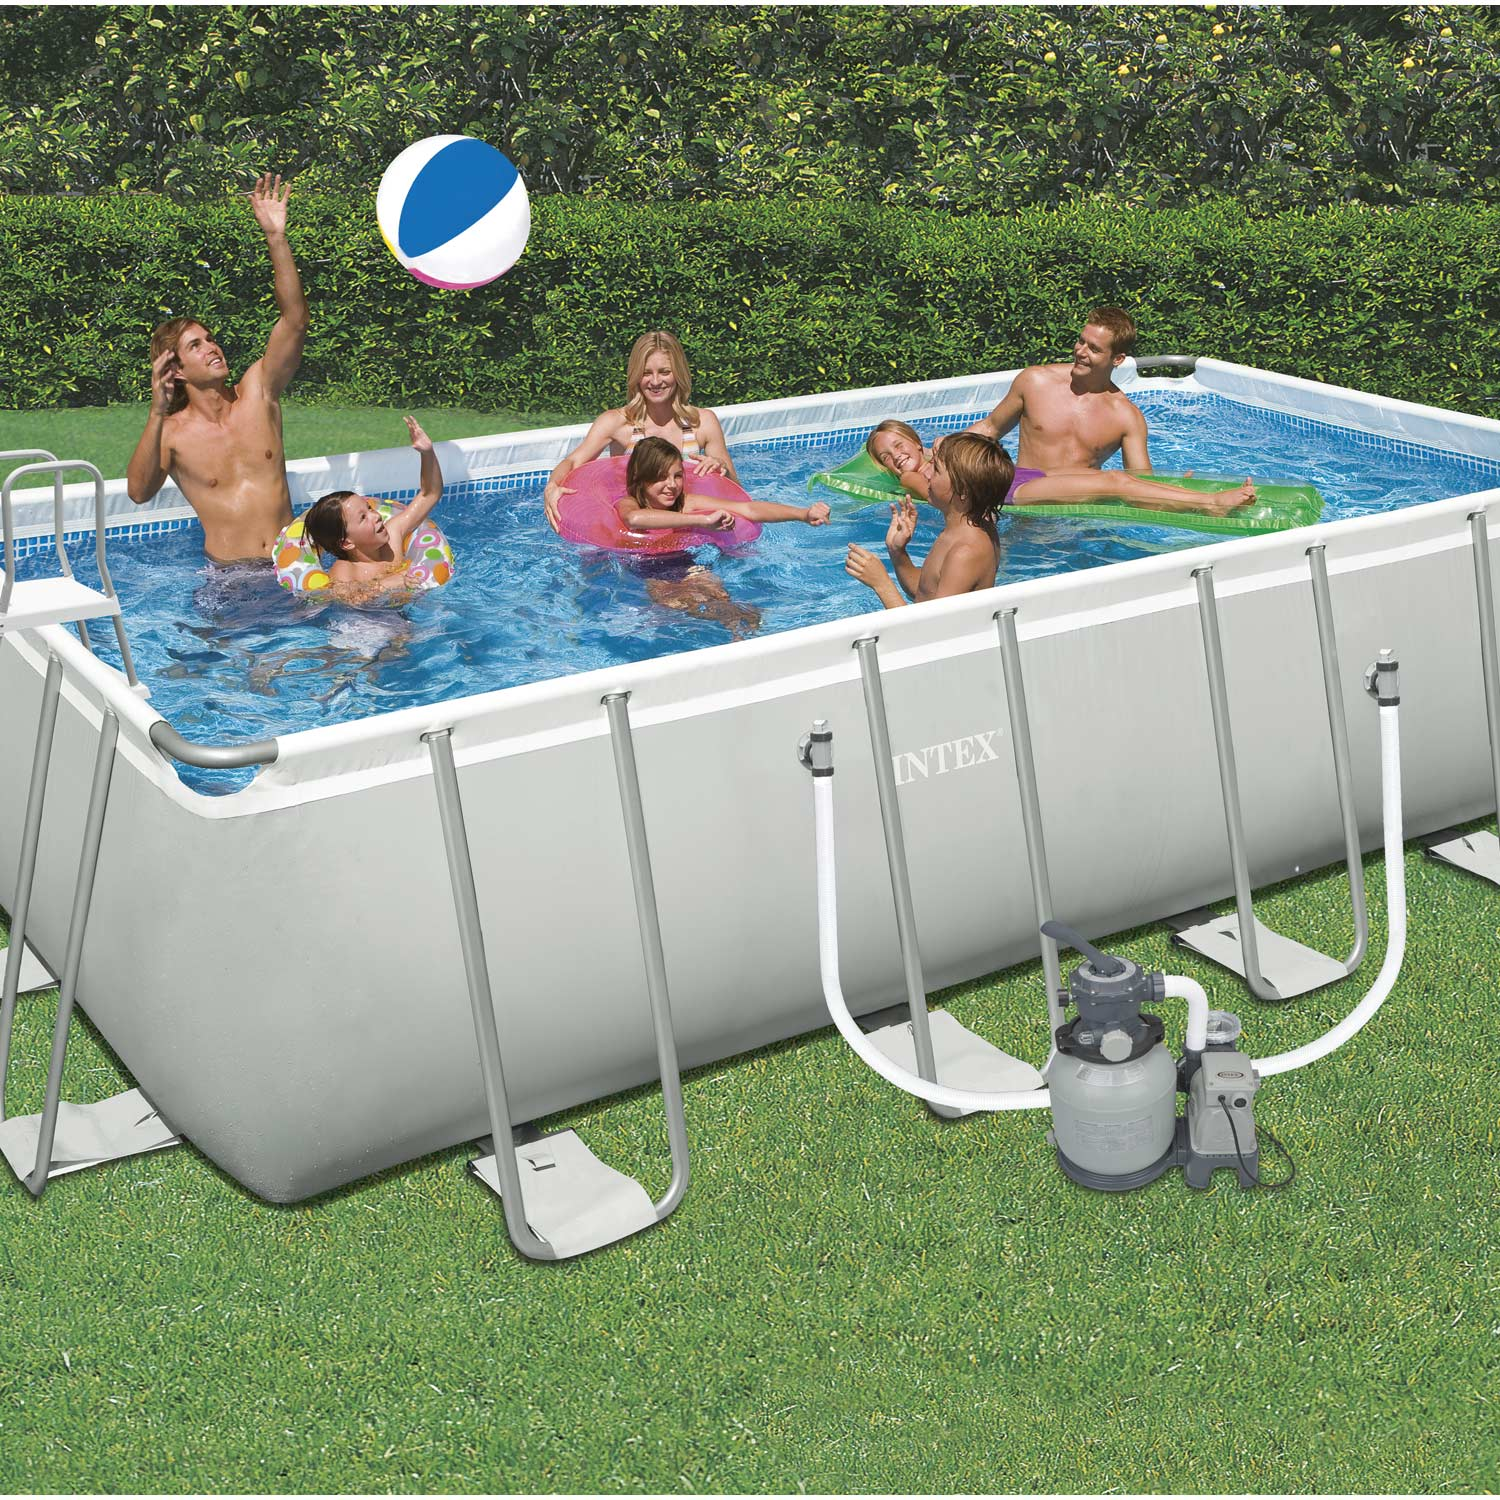 Piscine hors sol autoportante tubulaire intex l x l for Piscine xs hors sol